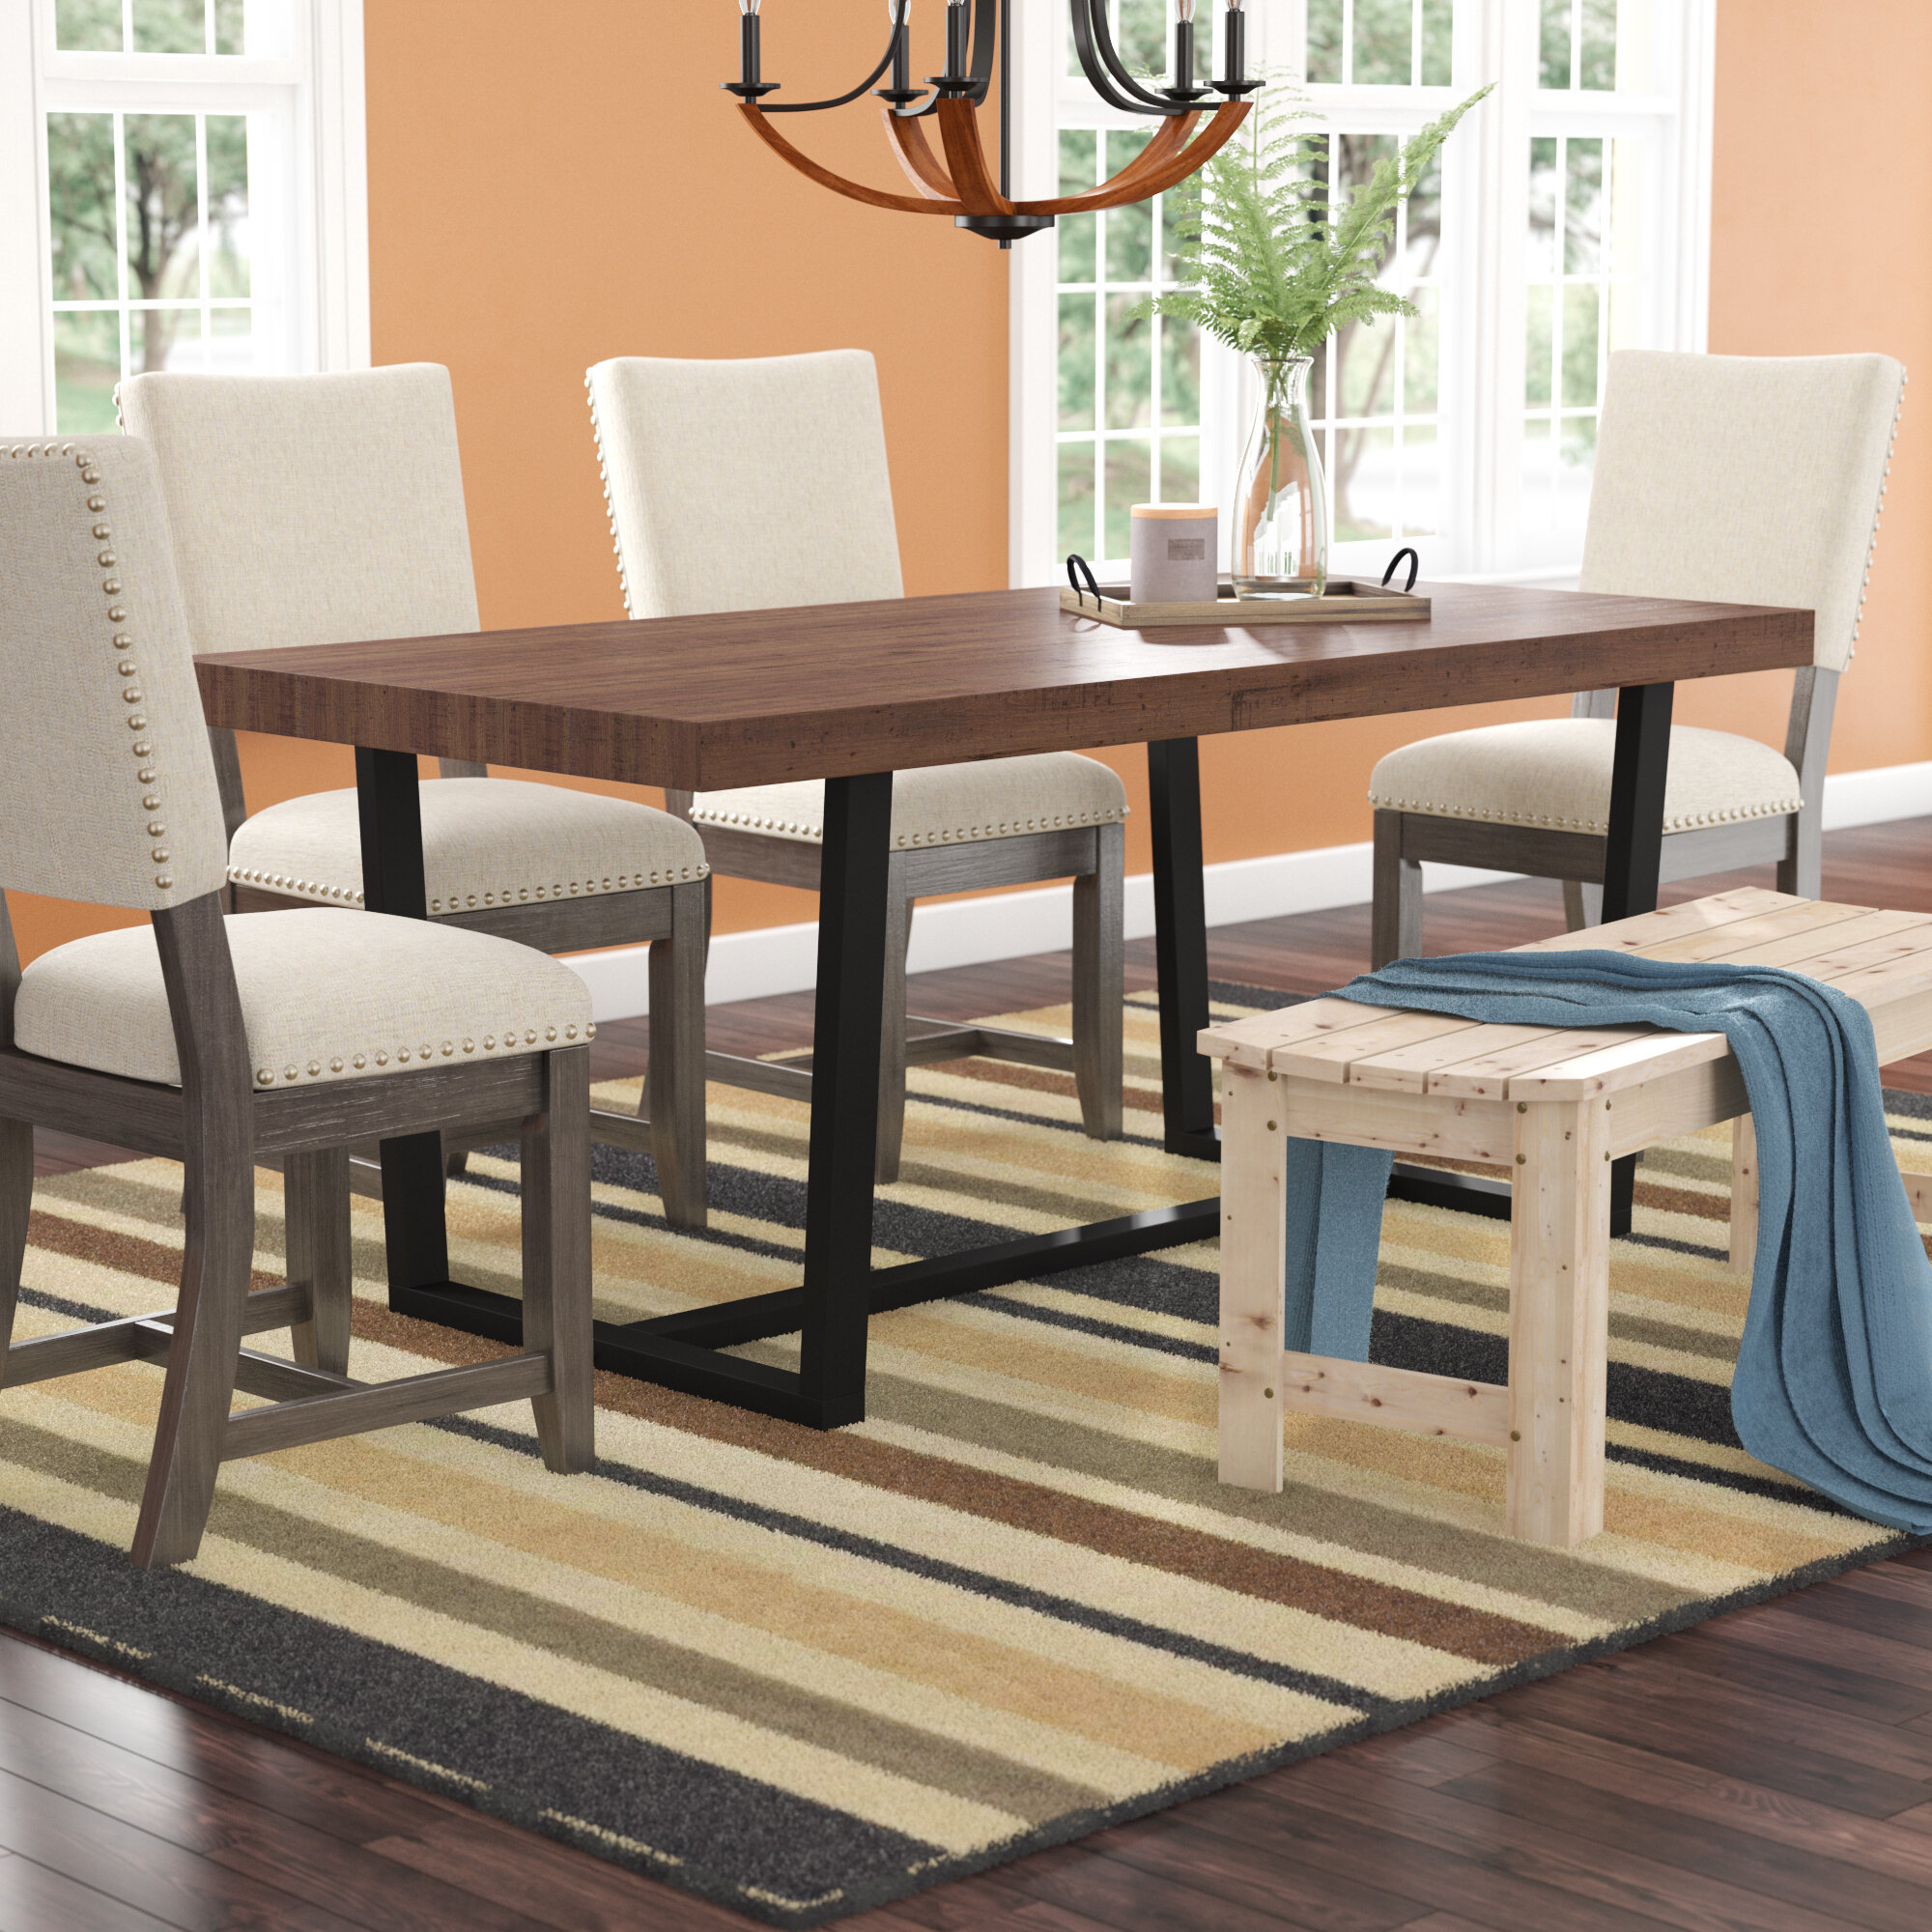 72 Inches Kitchen Dining Tables You Ll Love In 2021 Wayfair